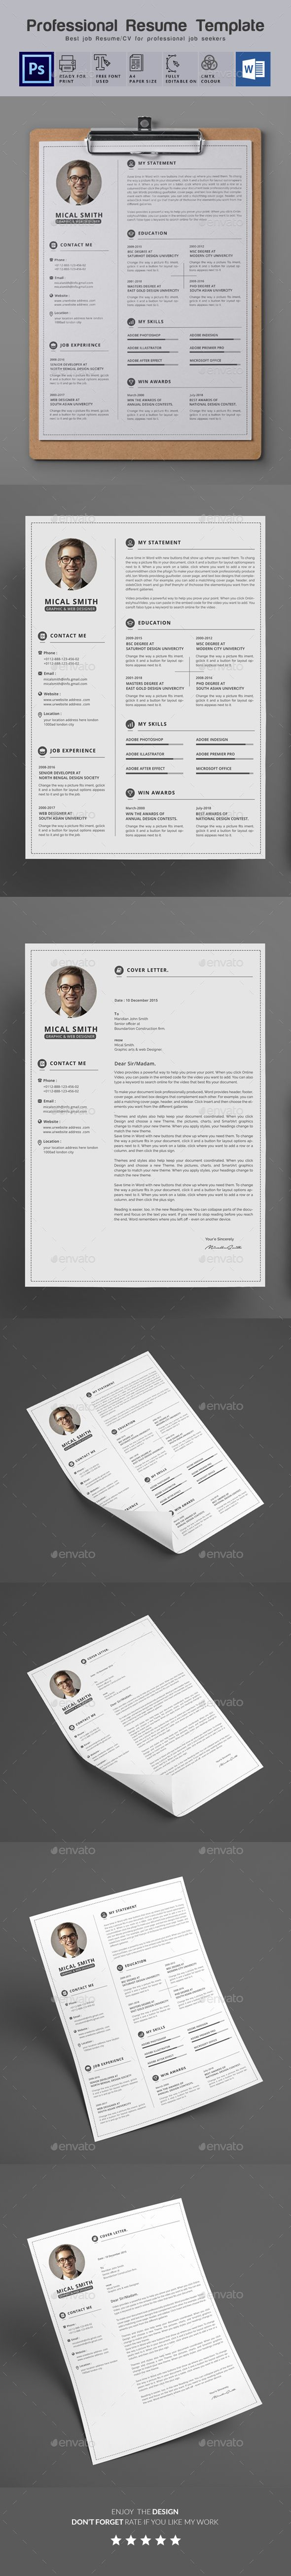 Resume | Template, Resume cv and Cv resume template